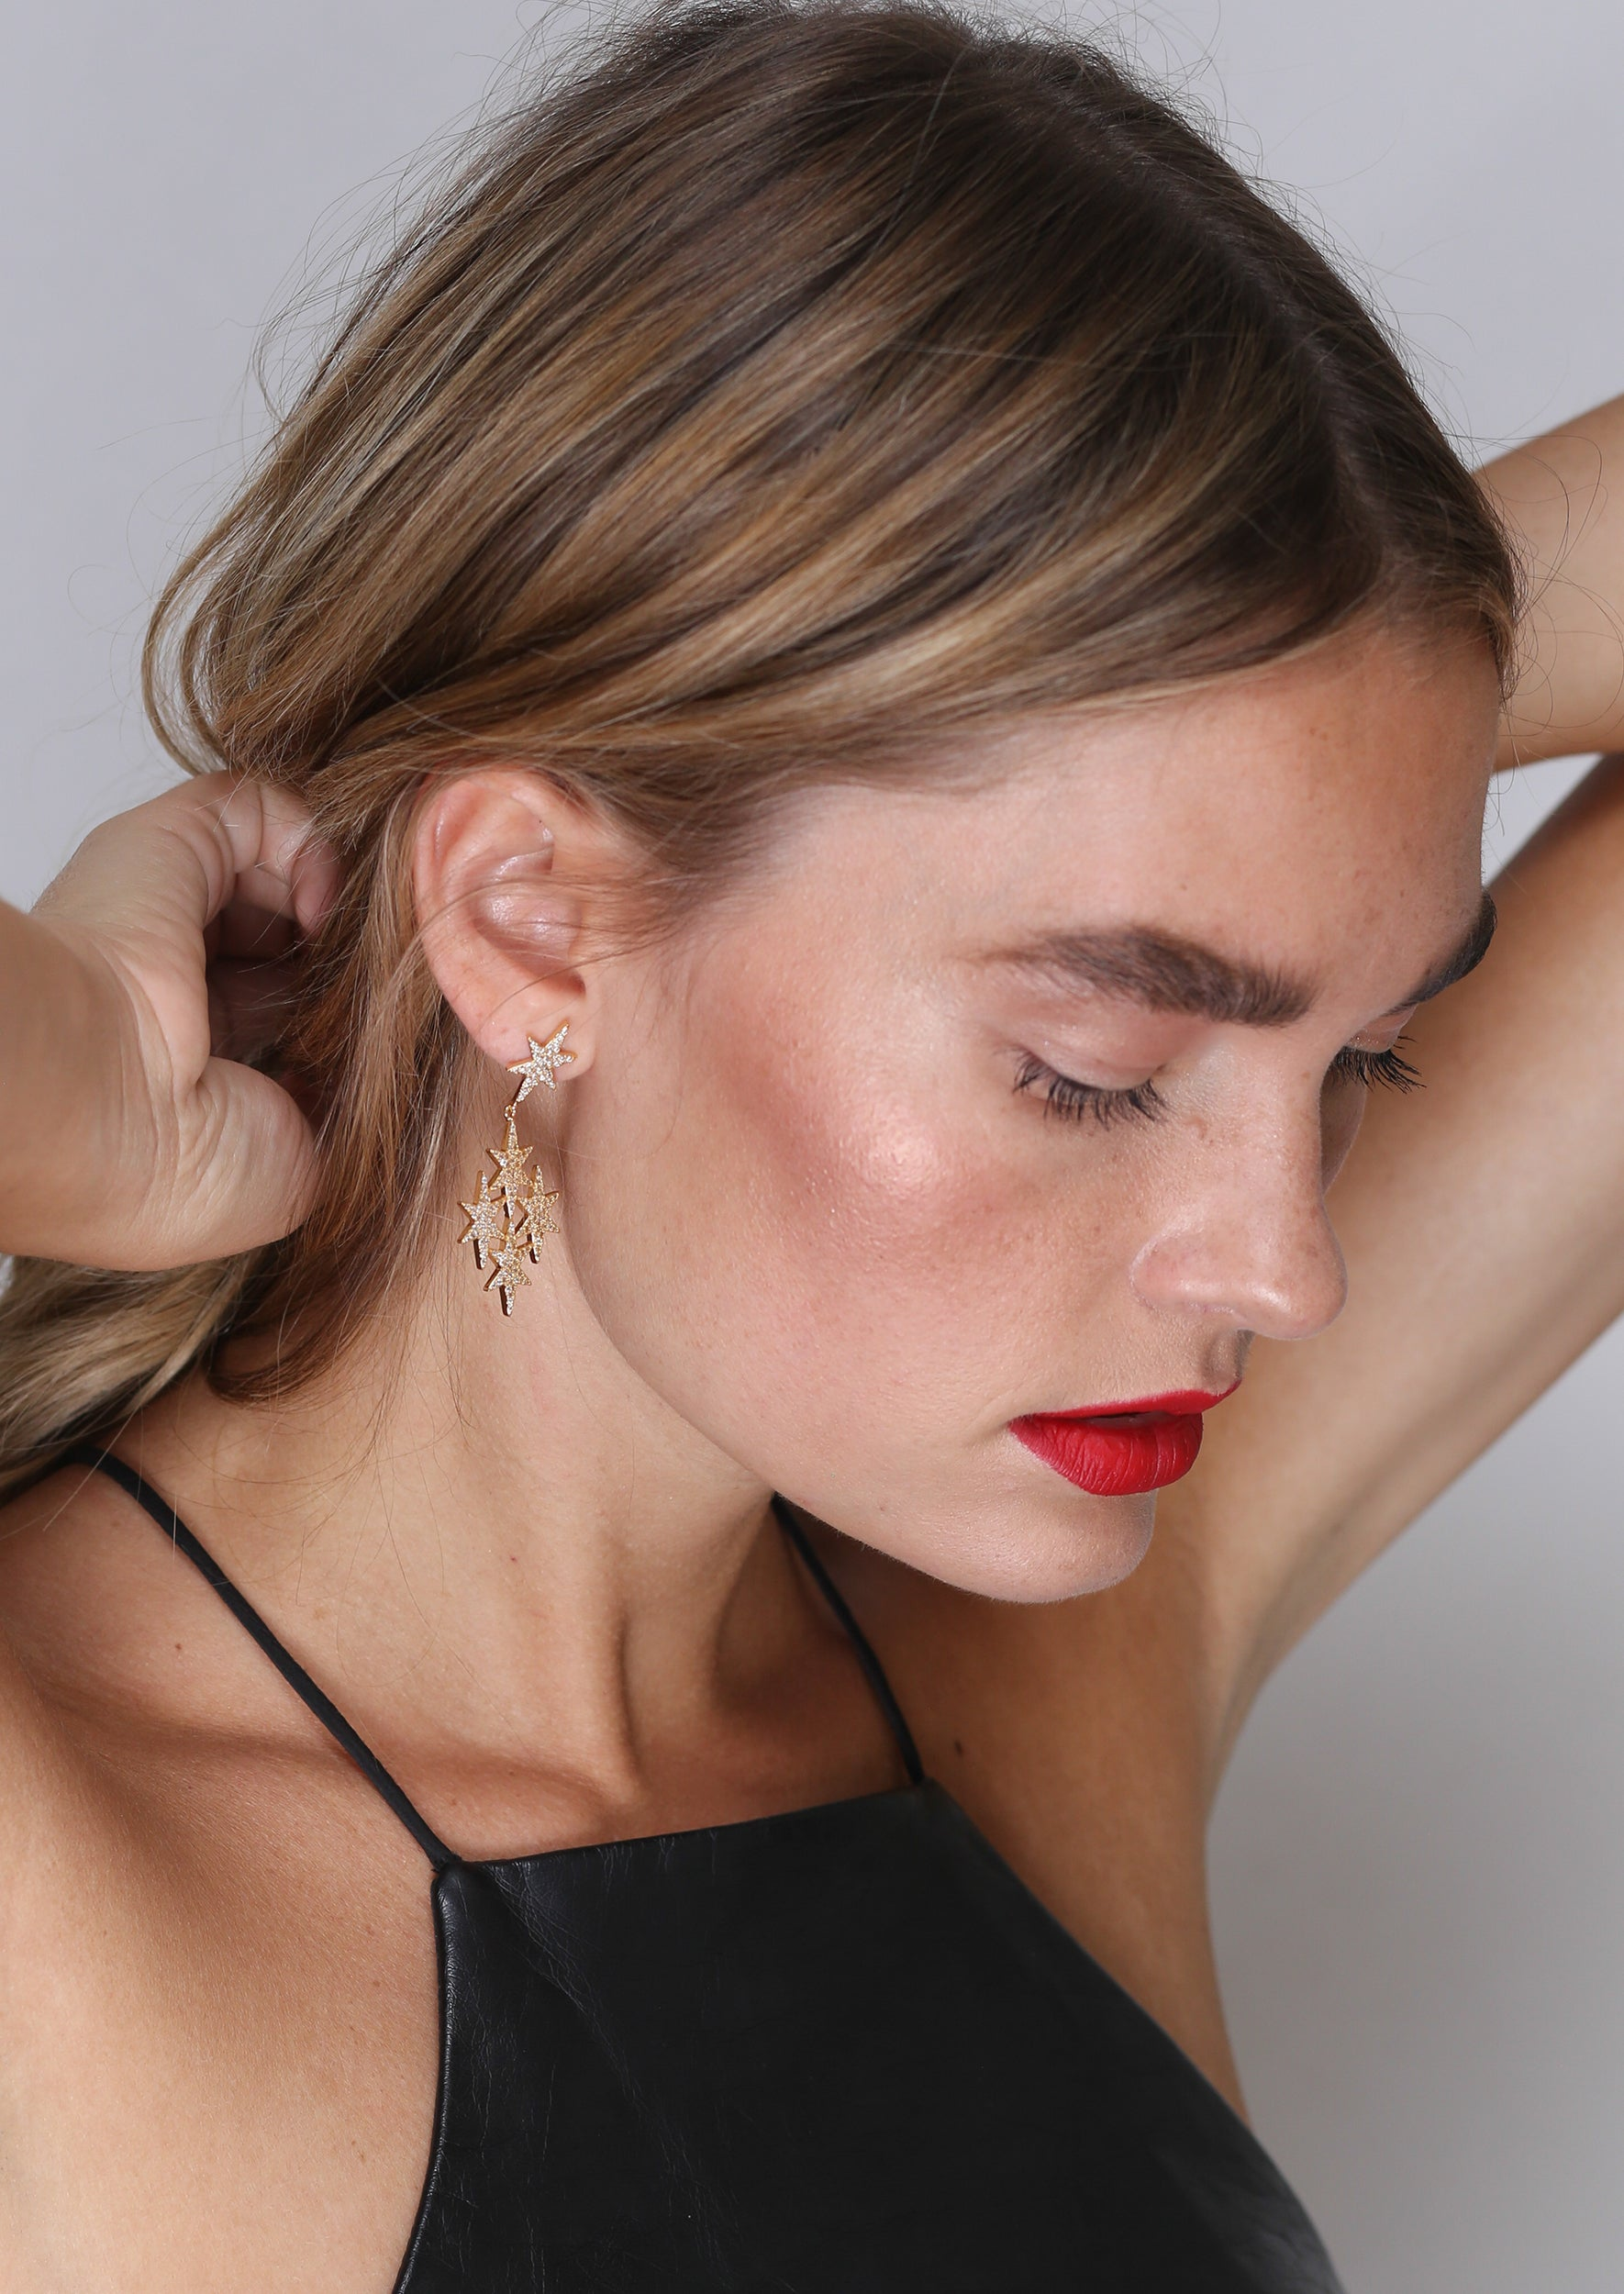 North Star Drop Earrings - Jules Smith - 14K Gold Plated - Boho Jewelry